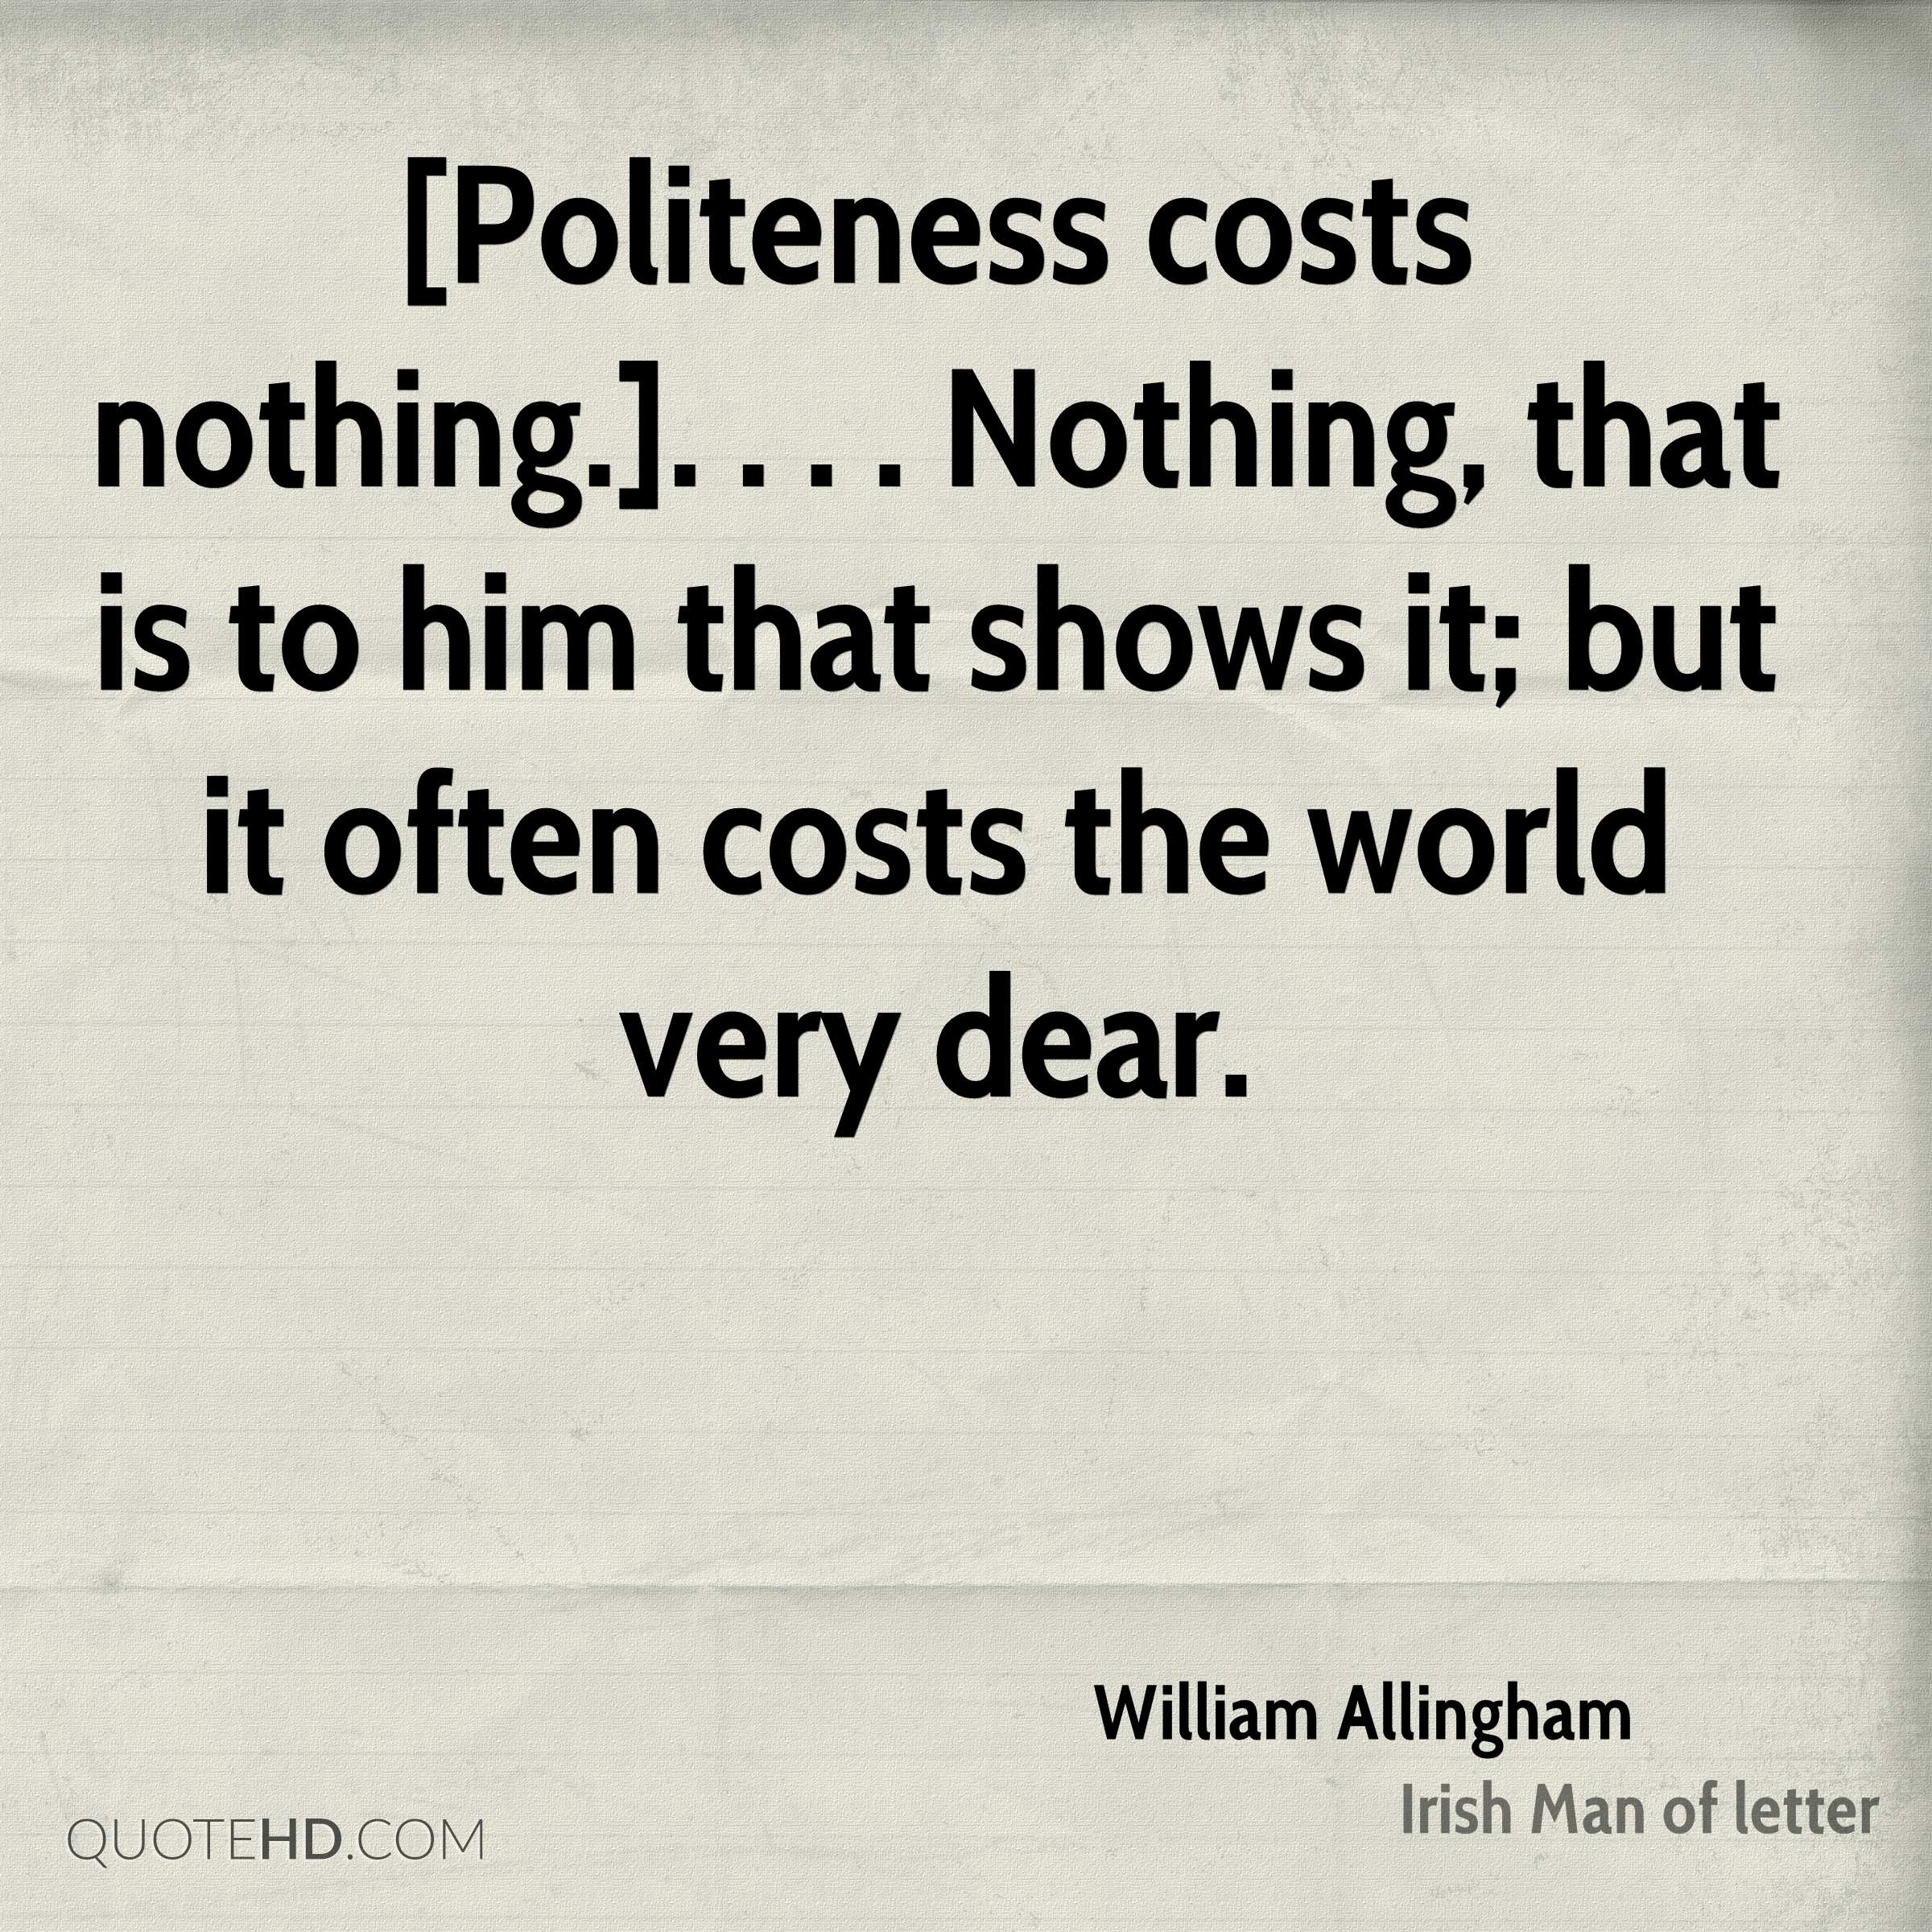 [Politeness costs nothing.]. . . . Nothing, that is to him that shows it; but it often costs the world very dear.